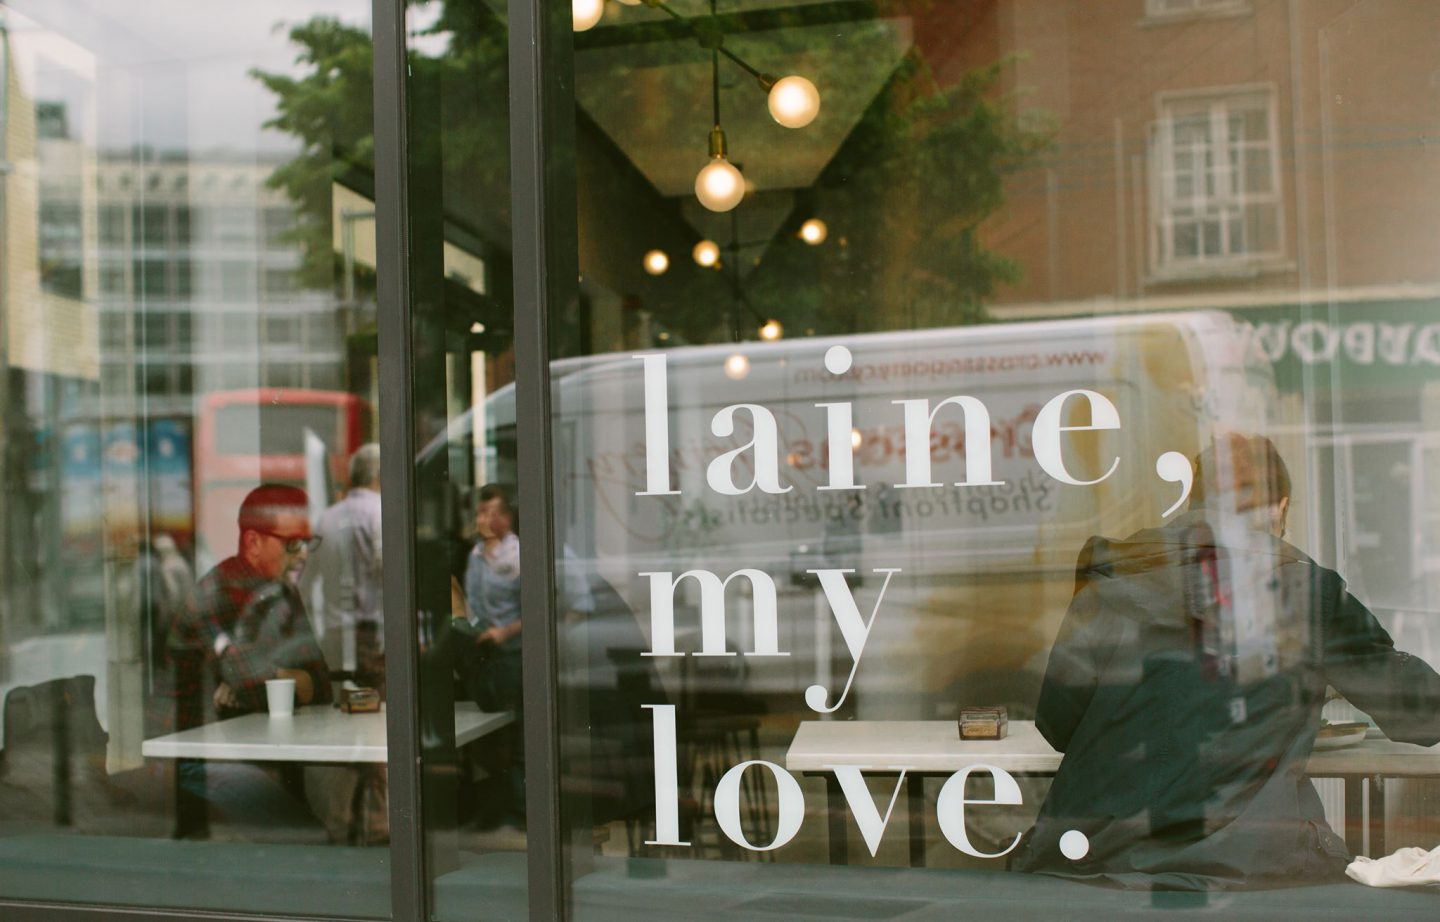 Travel Edits | 10 Great Places to Have Coffee in Dublin - Laine, My Love